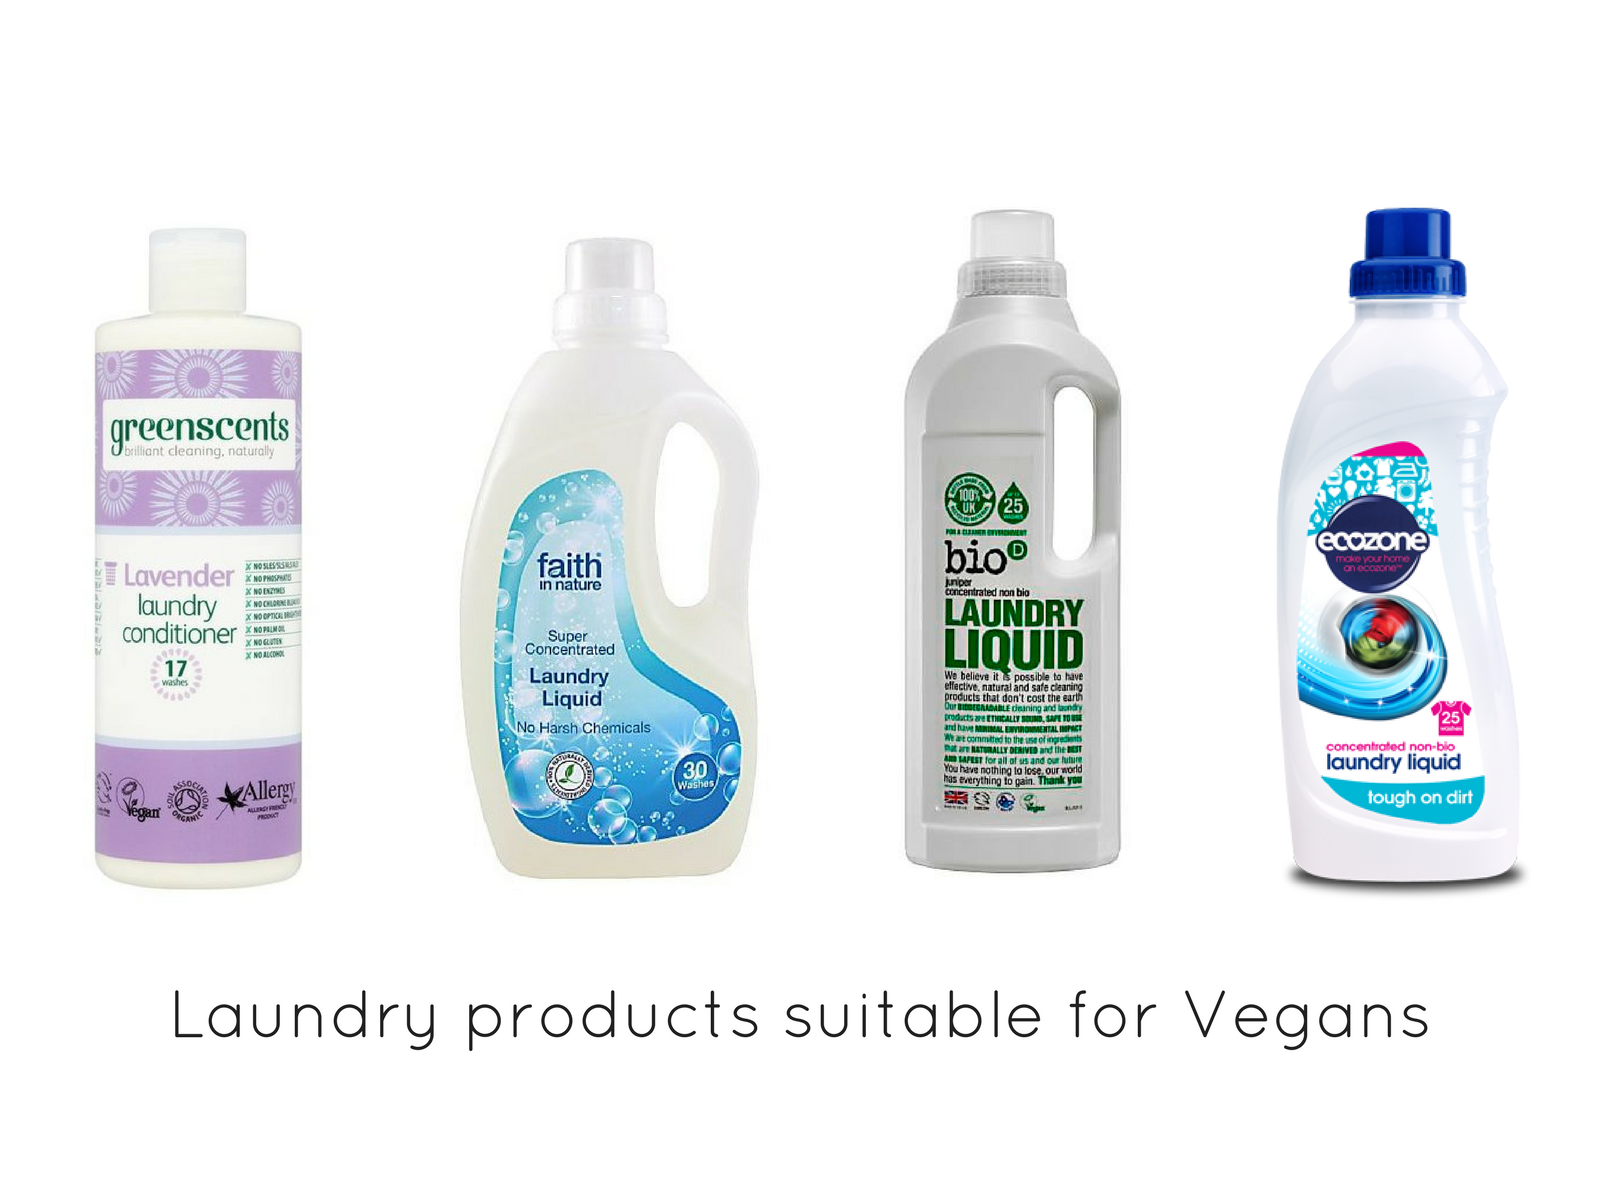 Looking for Eco Friendly Laundry Products suitable for allergies and vegans